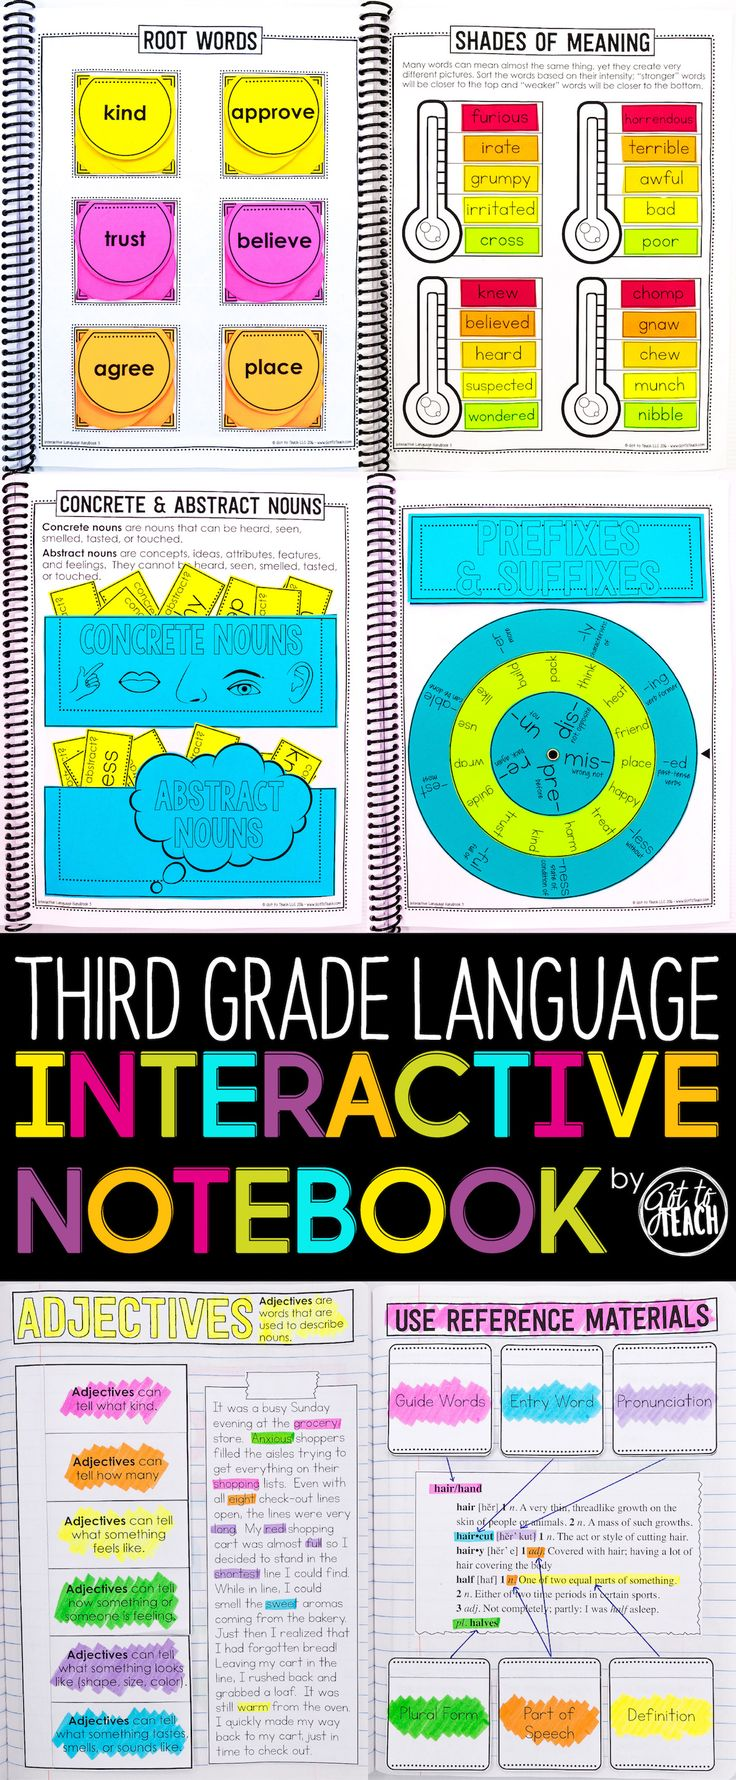 Third Grade Language Interactive Notebook.  Cover all 3rd Common Core Language standards in an engaging and memorable way.  $